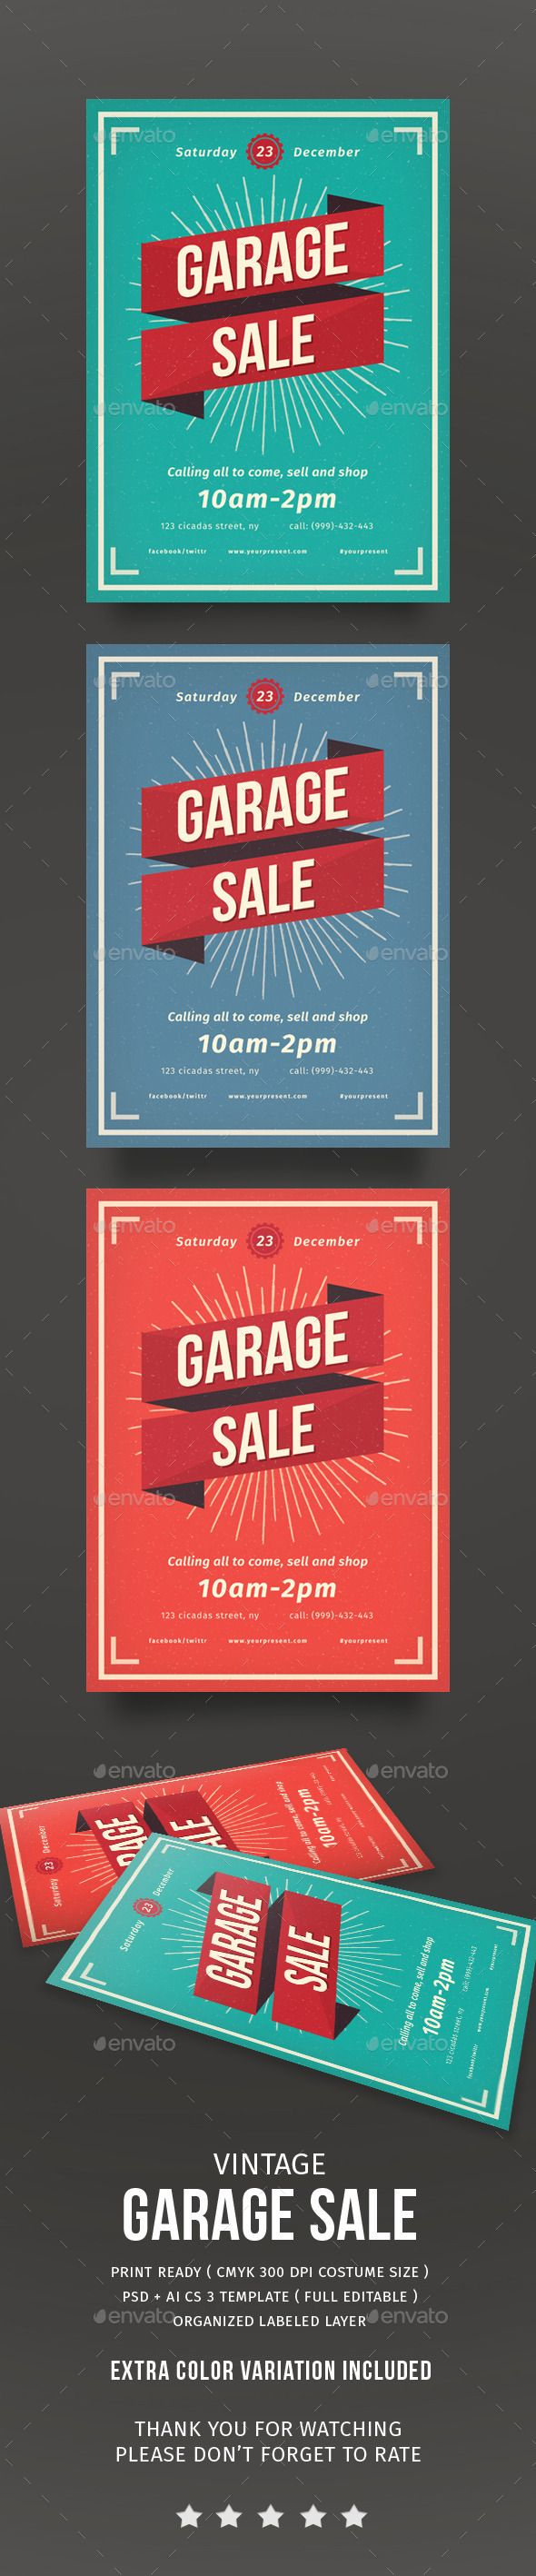 Vintage Garage Sale Flayer Template PSD #design Download: http://graphicriver.net/item/vintage-garage-sale-flayer/14118689?ref=ksioks